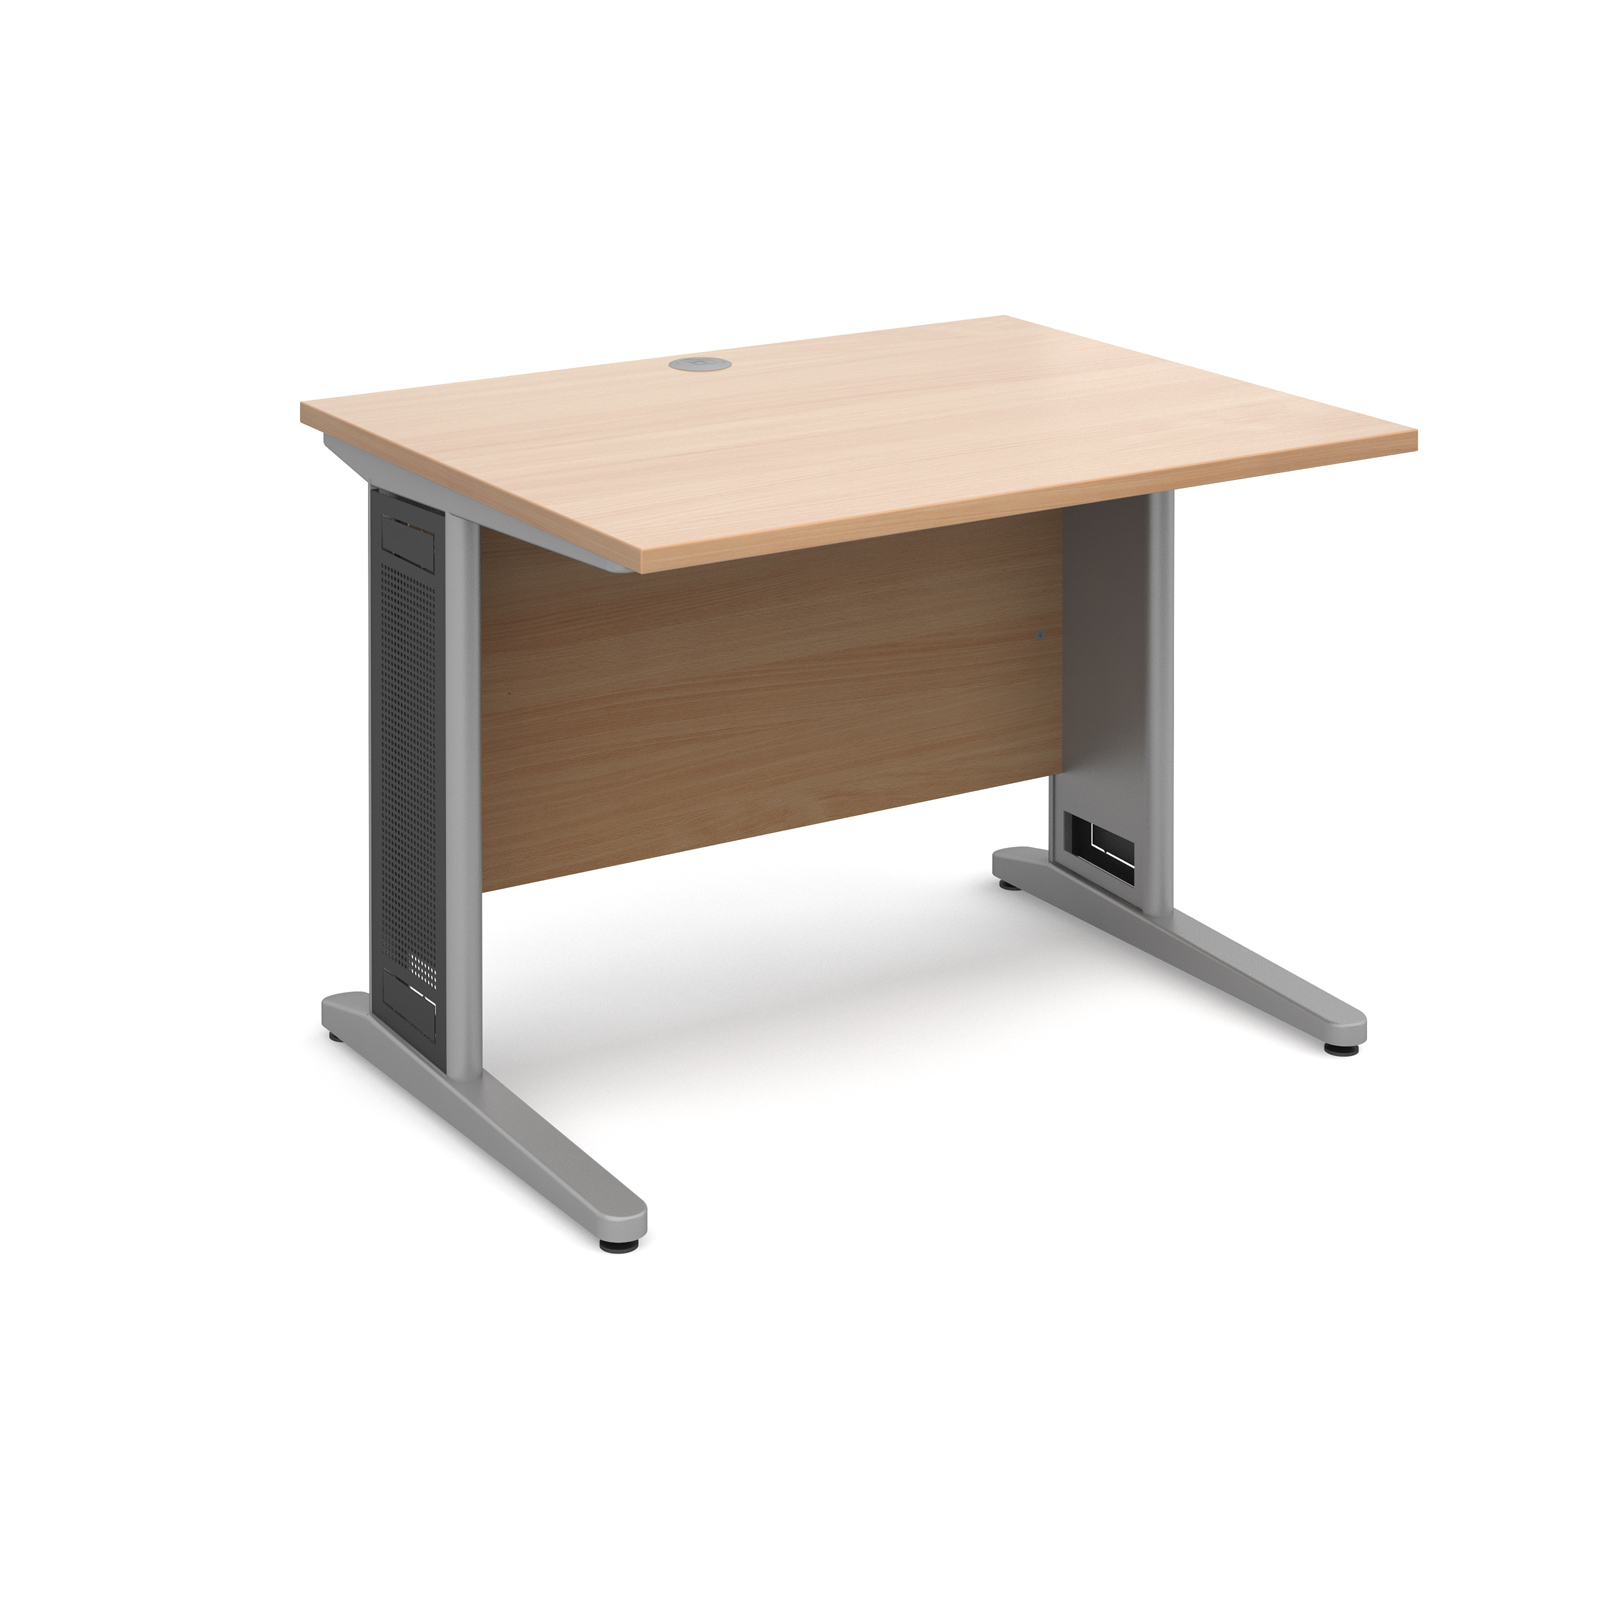 Largo straight desk 1000mm x 800mm - silver cantilever frame with removable grill, beech top